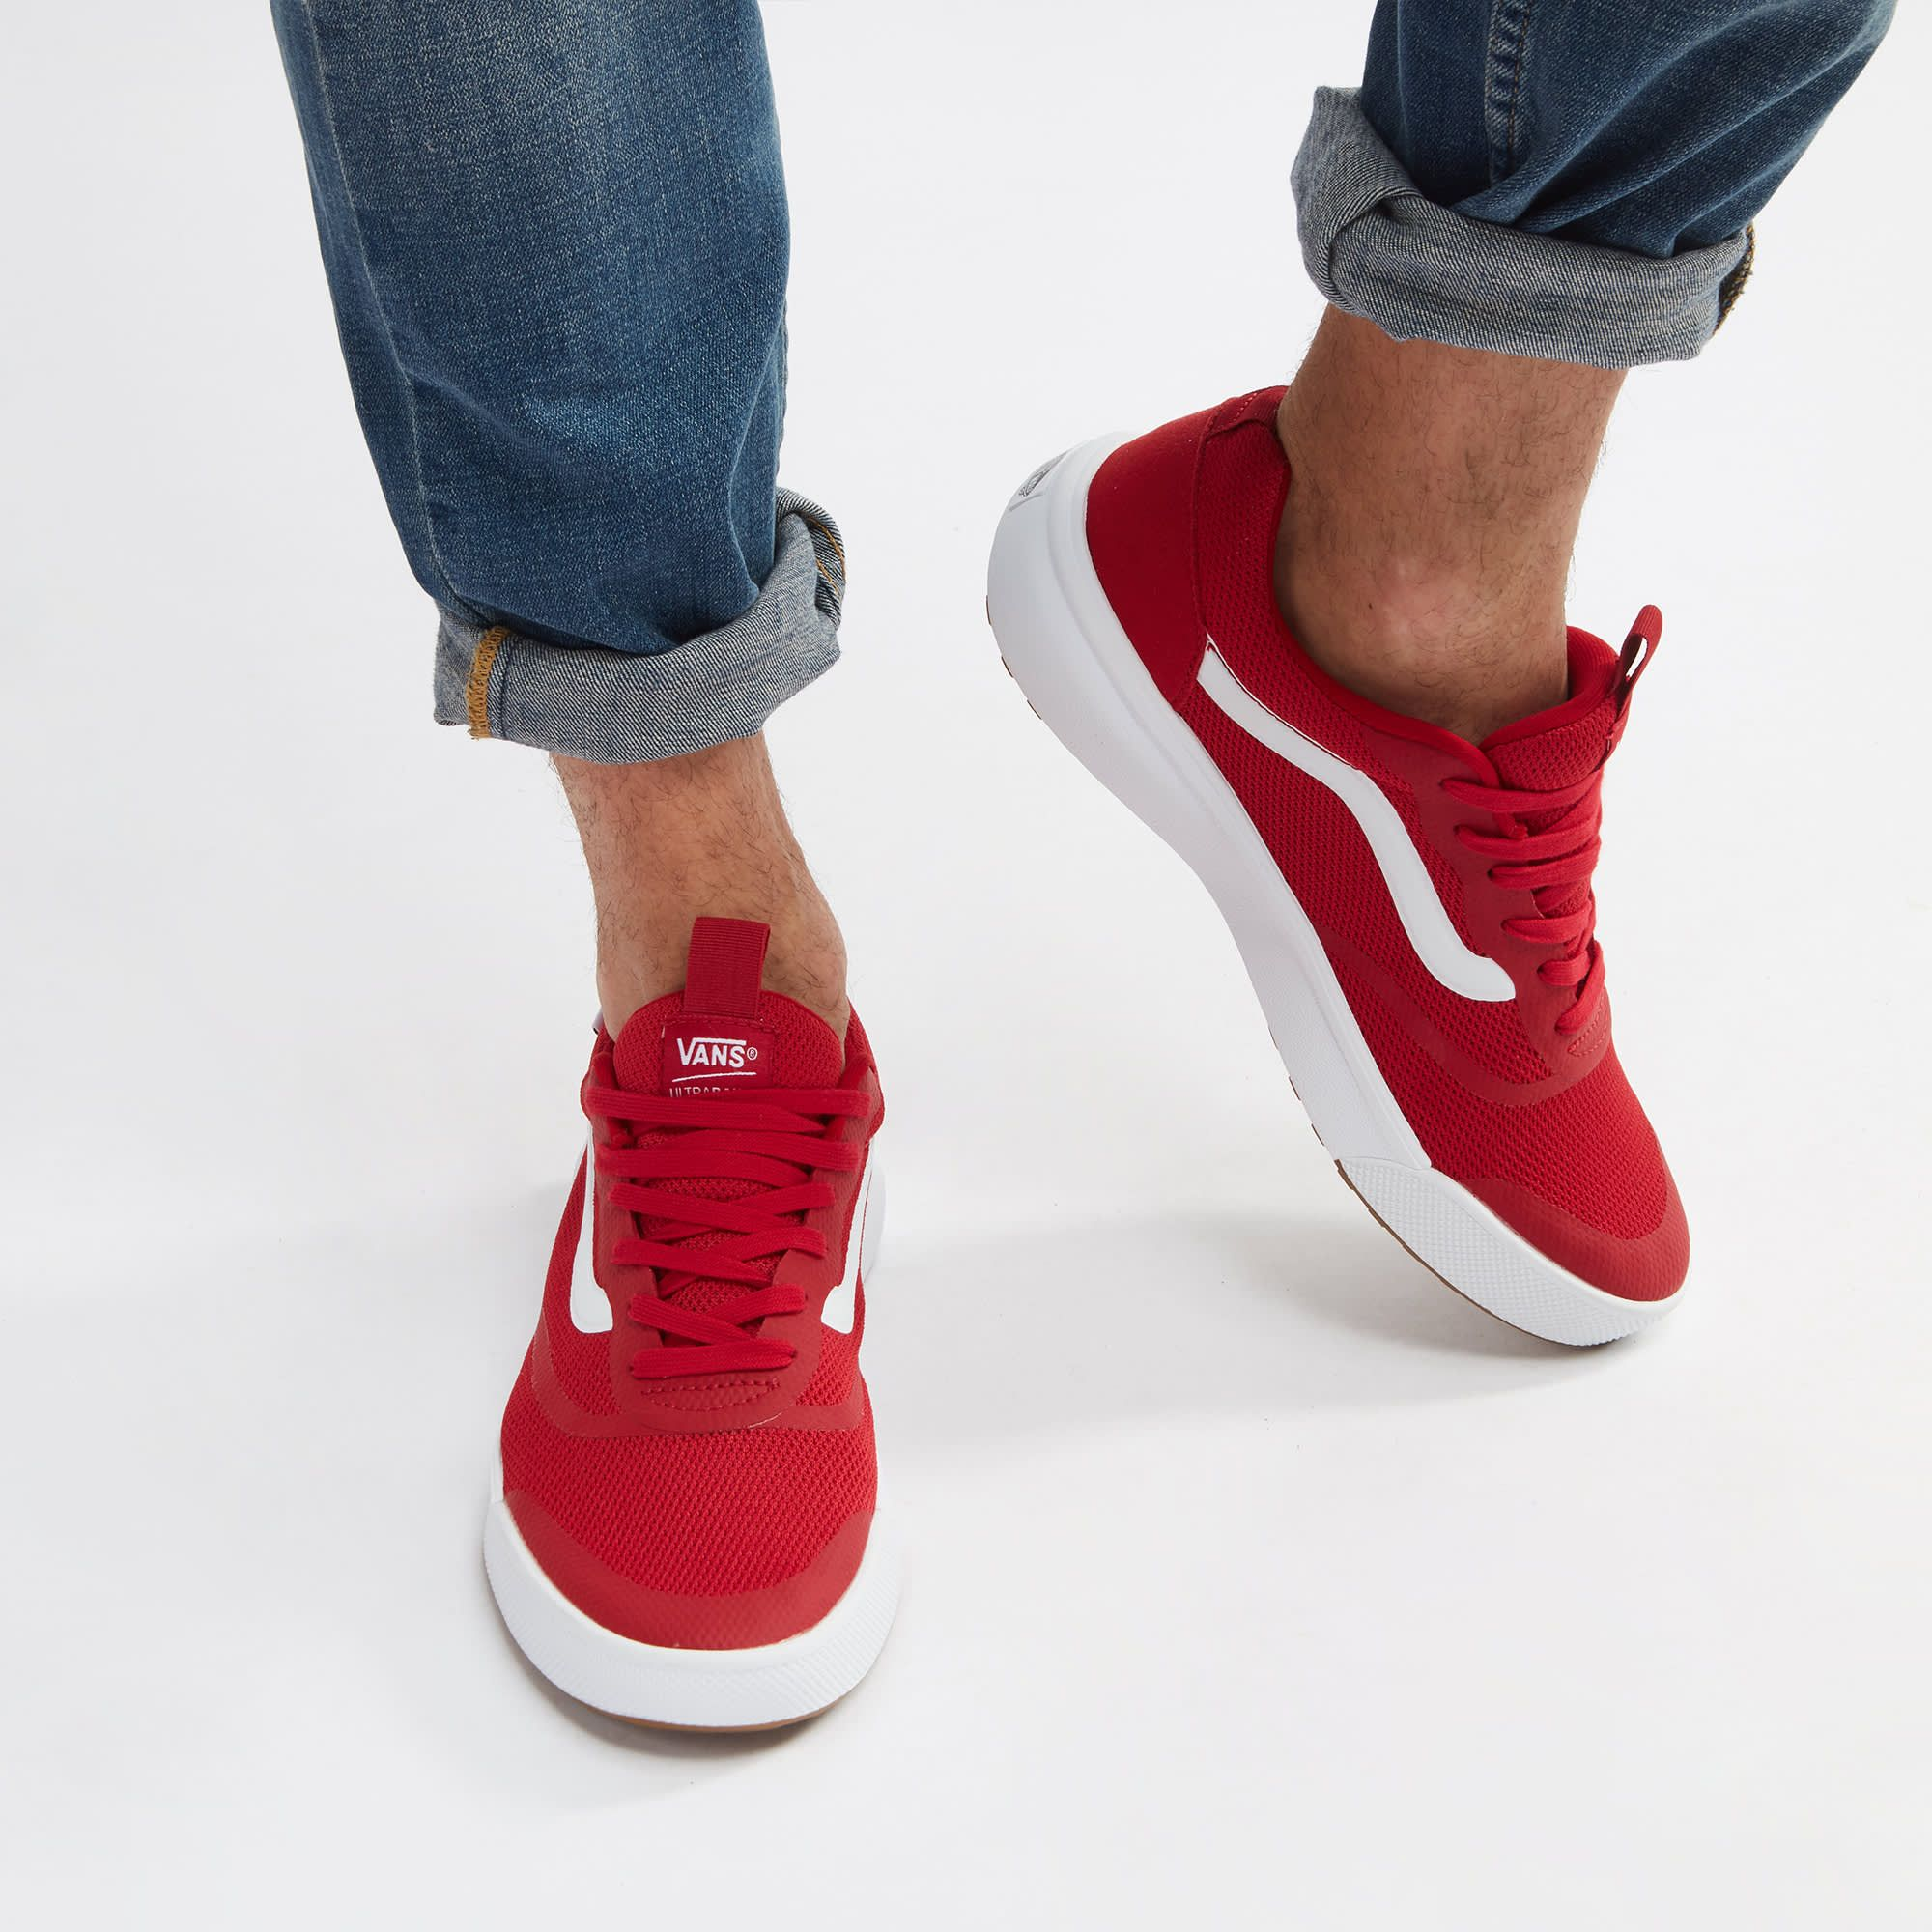 15b8cc8803 Shop Red Vans UltraRange Rapidweld Shoe for Mens by Vans